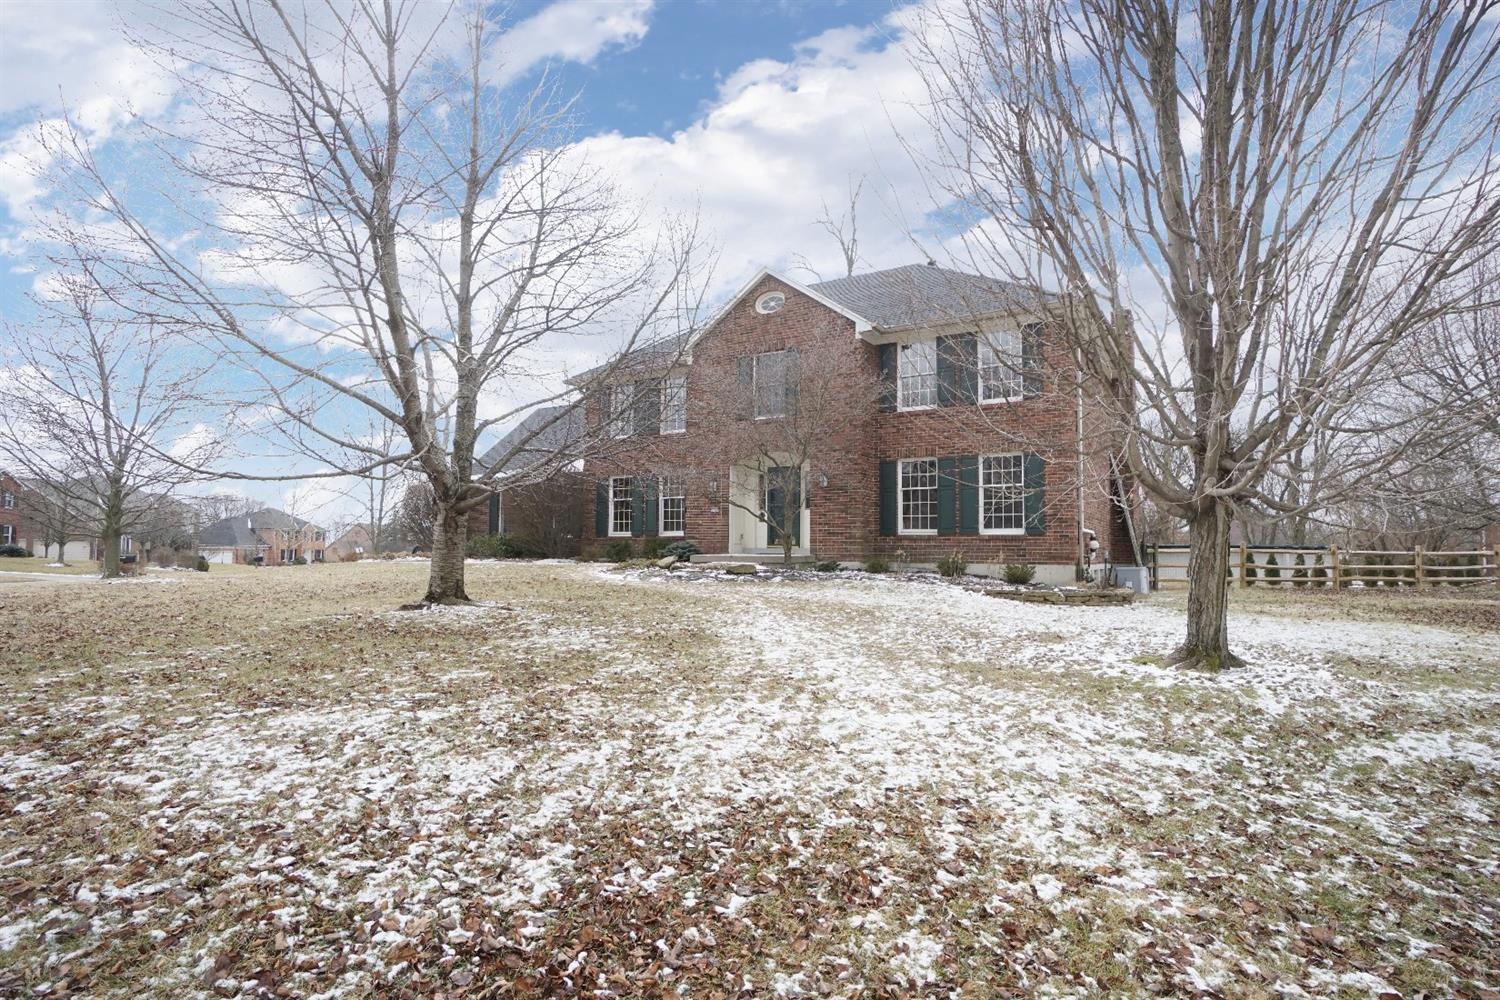 Great home in desirable West Chester Forest.4000sqft of living space,finished basement,hdwd floors,custom built kitchen, Home office/Study, Master Suite with great storage, Great deck/pool for entertaining and enjoying the outdoors.New roof in 2012, solid 6-panel doors. lots of upgrades!